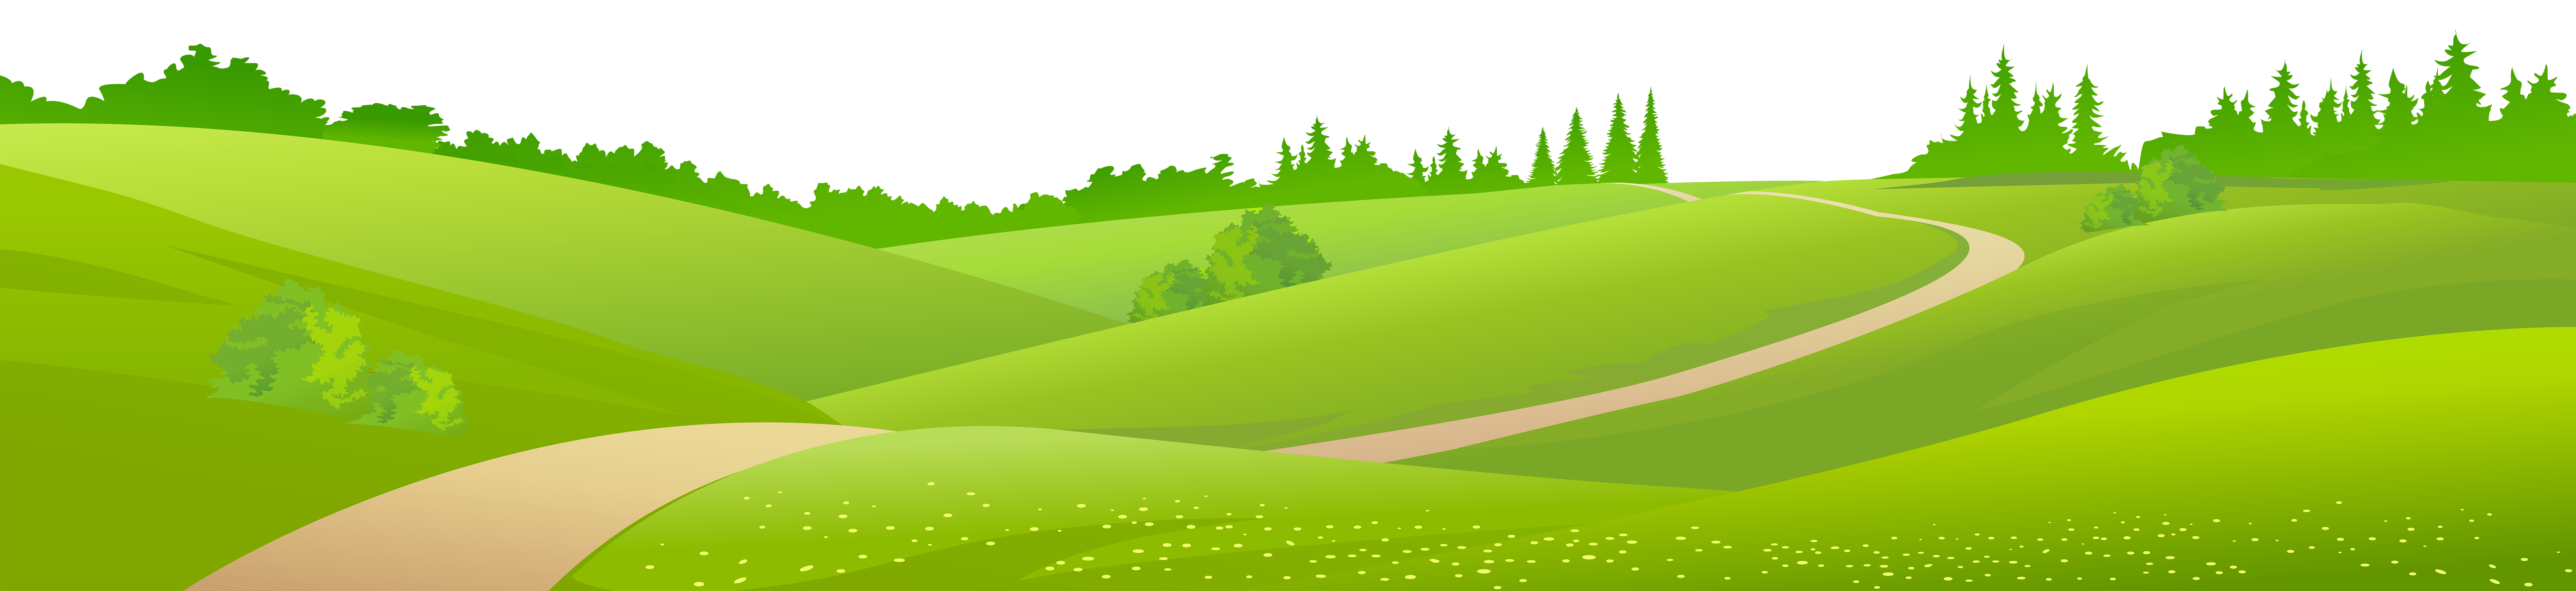 jpg library download Valley clipart definition. Mountain wallpapers ultra reginald.